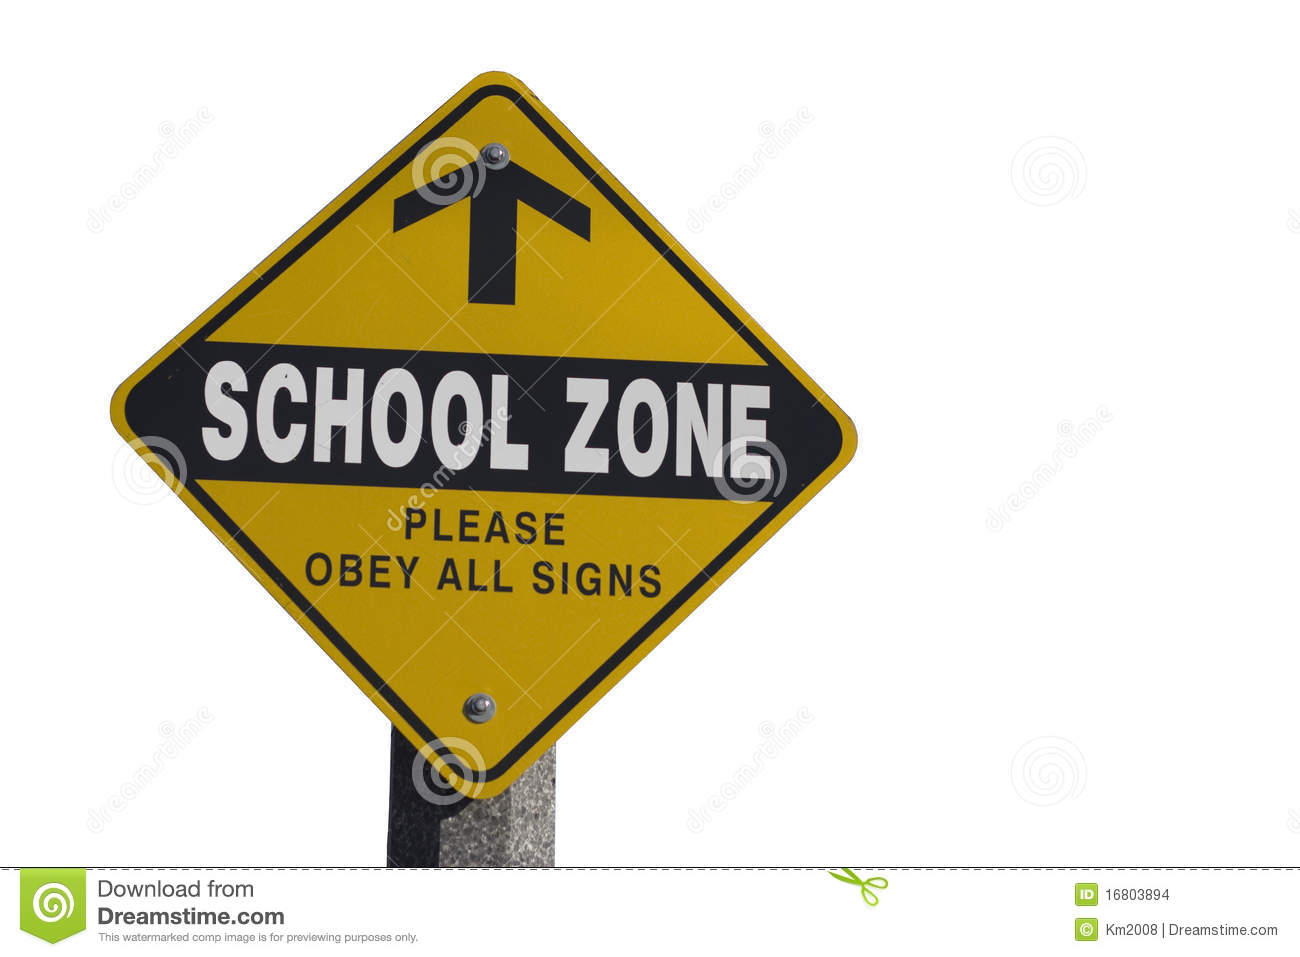 Isolated school zone please obey all signs sign on white background